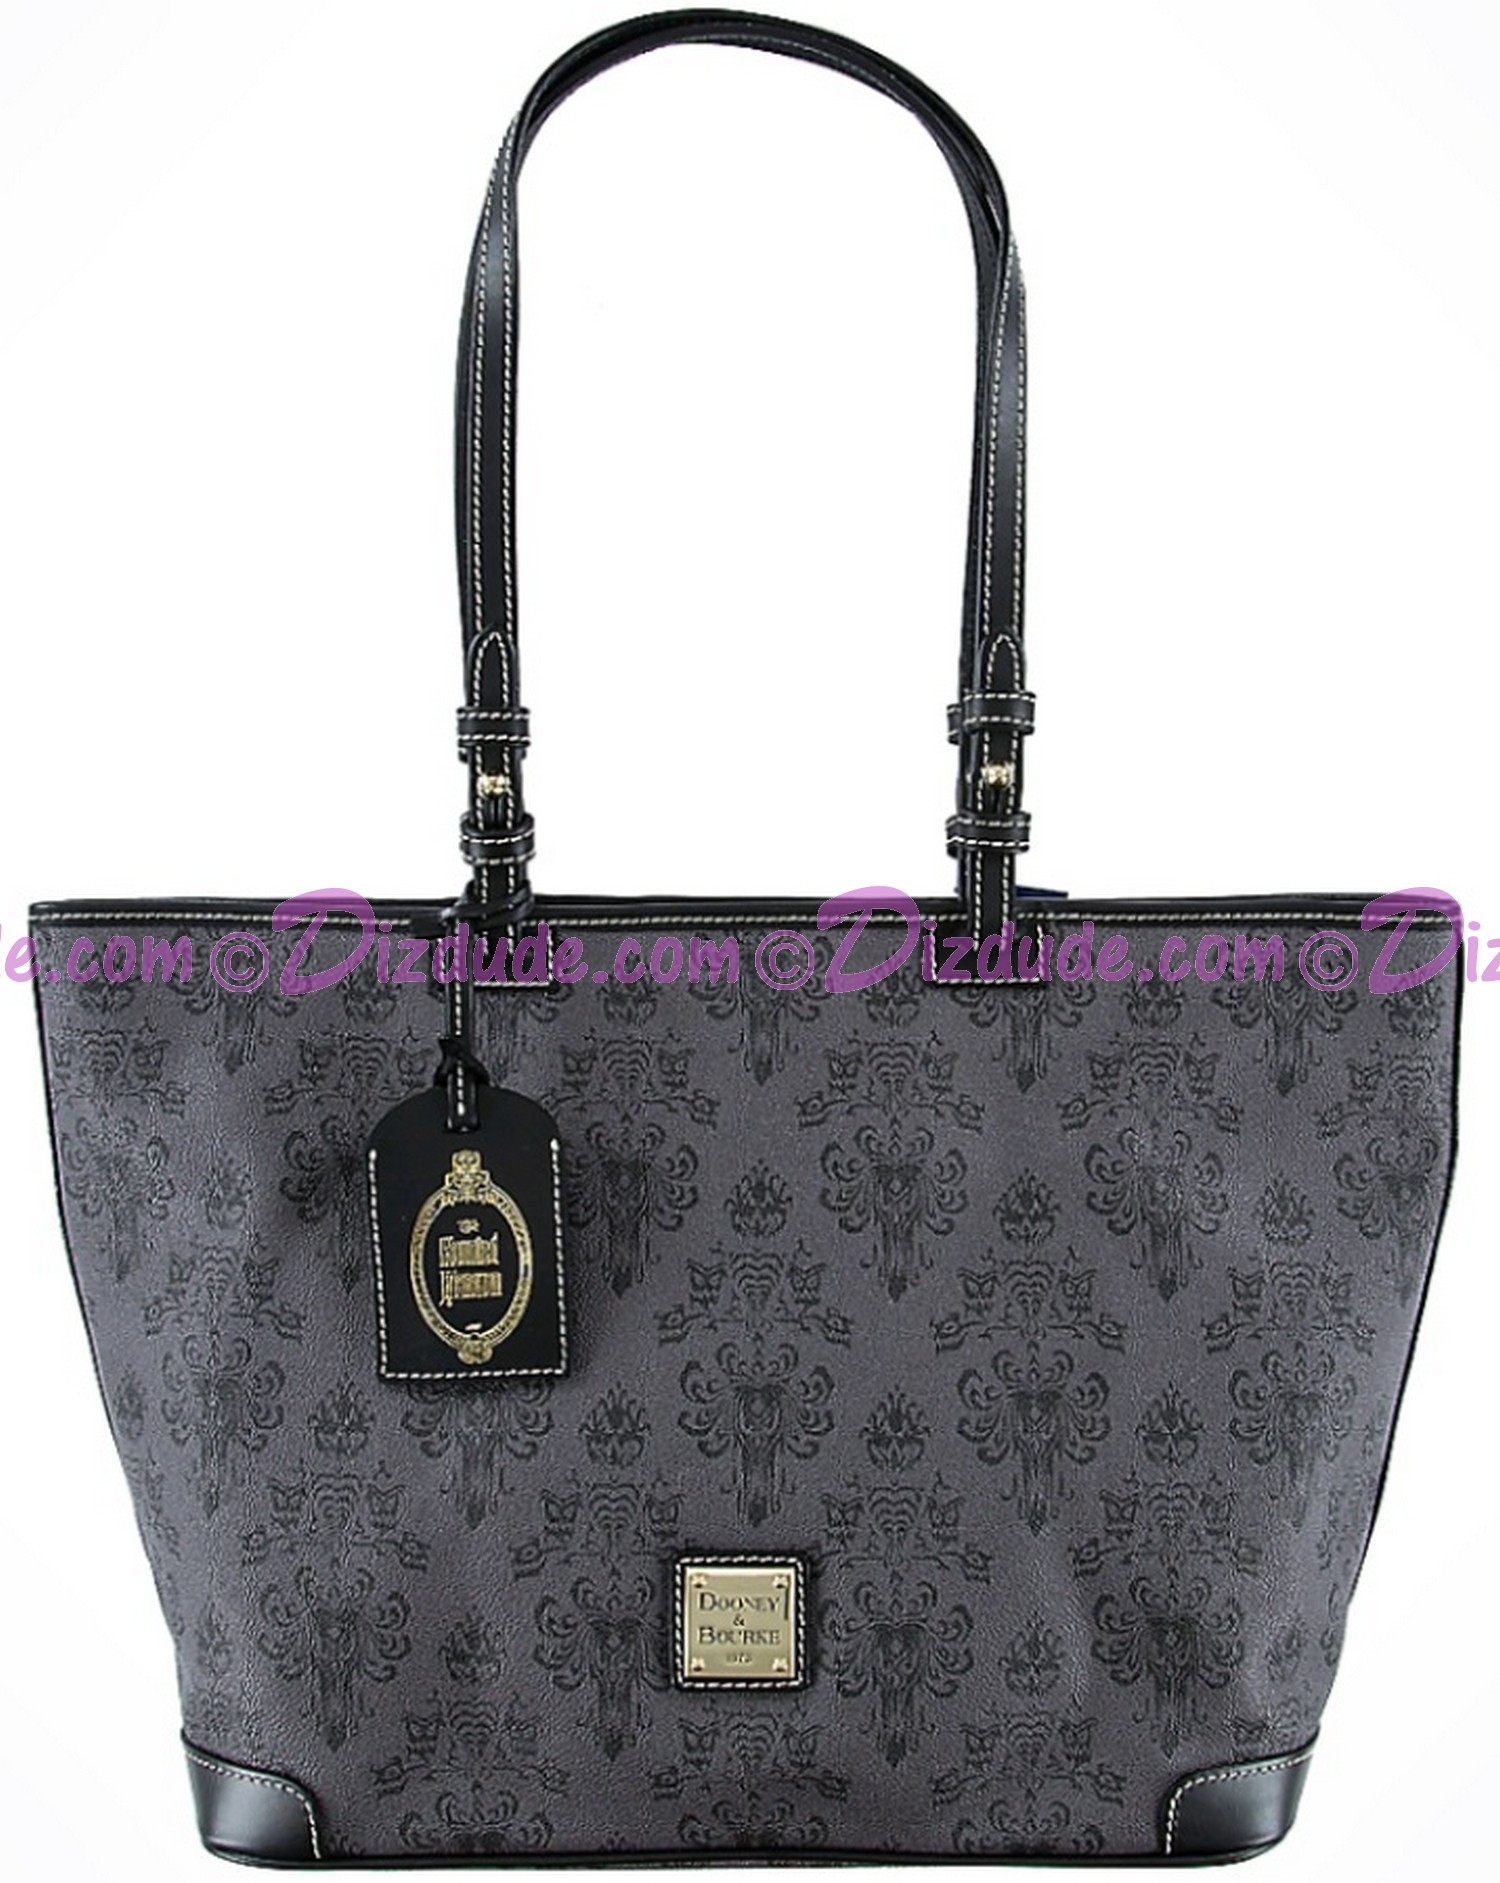 Dooney & Bourke - Disney Haunted Mansion Wallpaper Tote Handbag © Dizdude.com